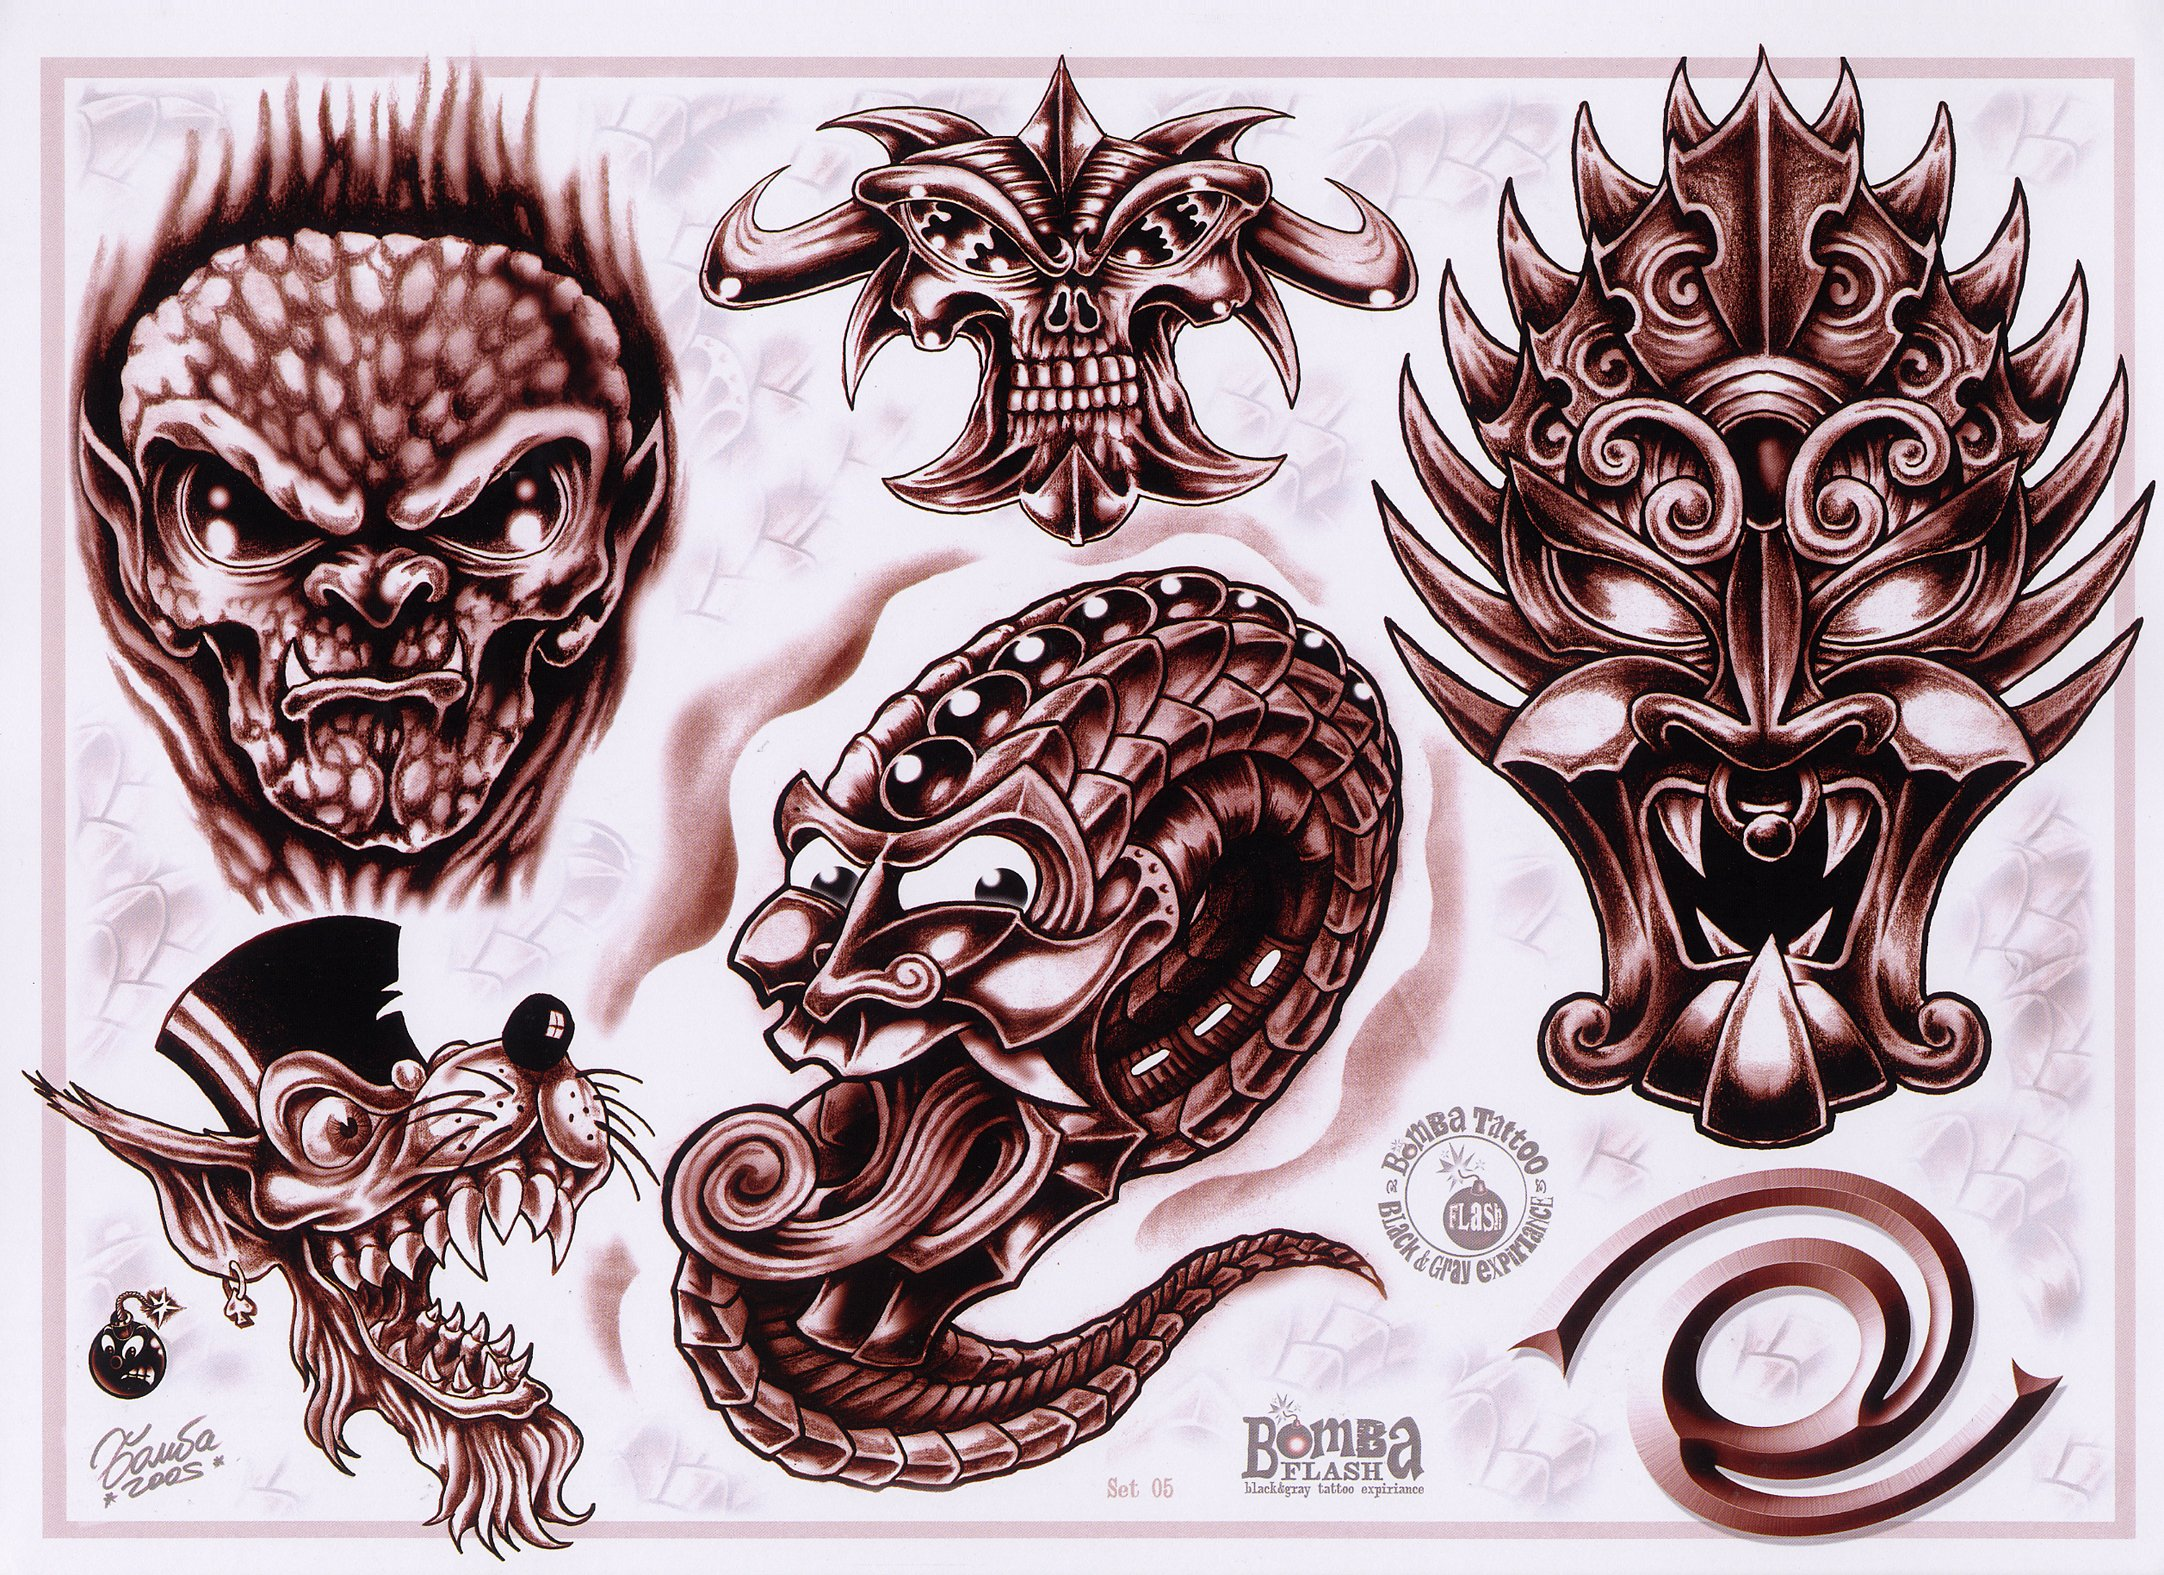 Monster tattoo designs by Bomba.